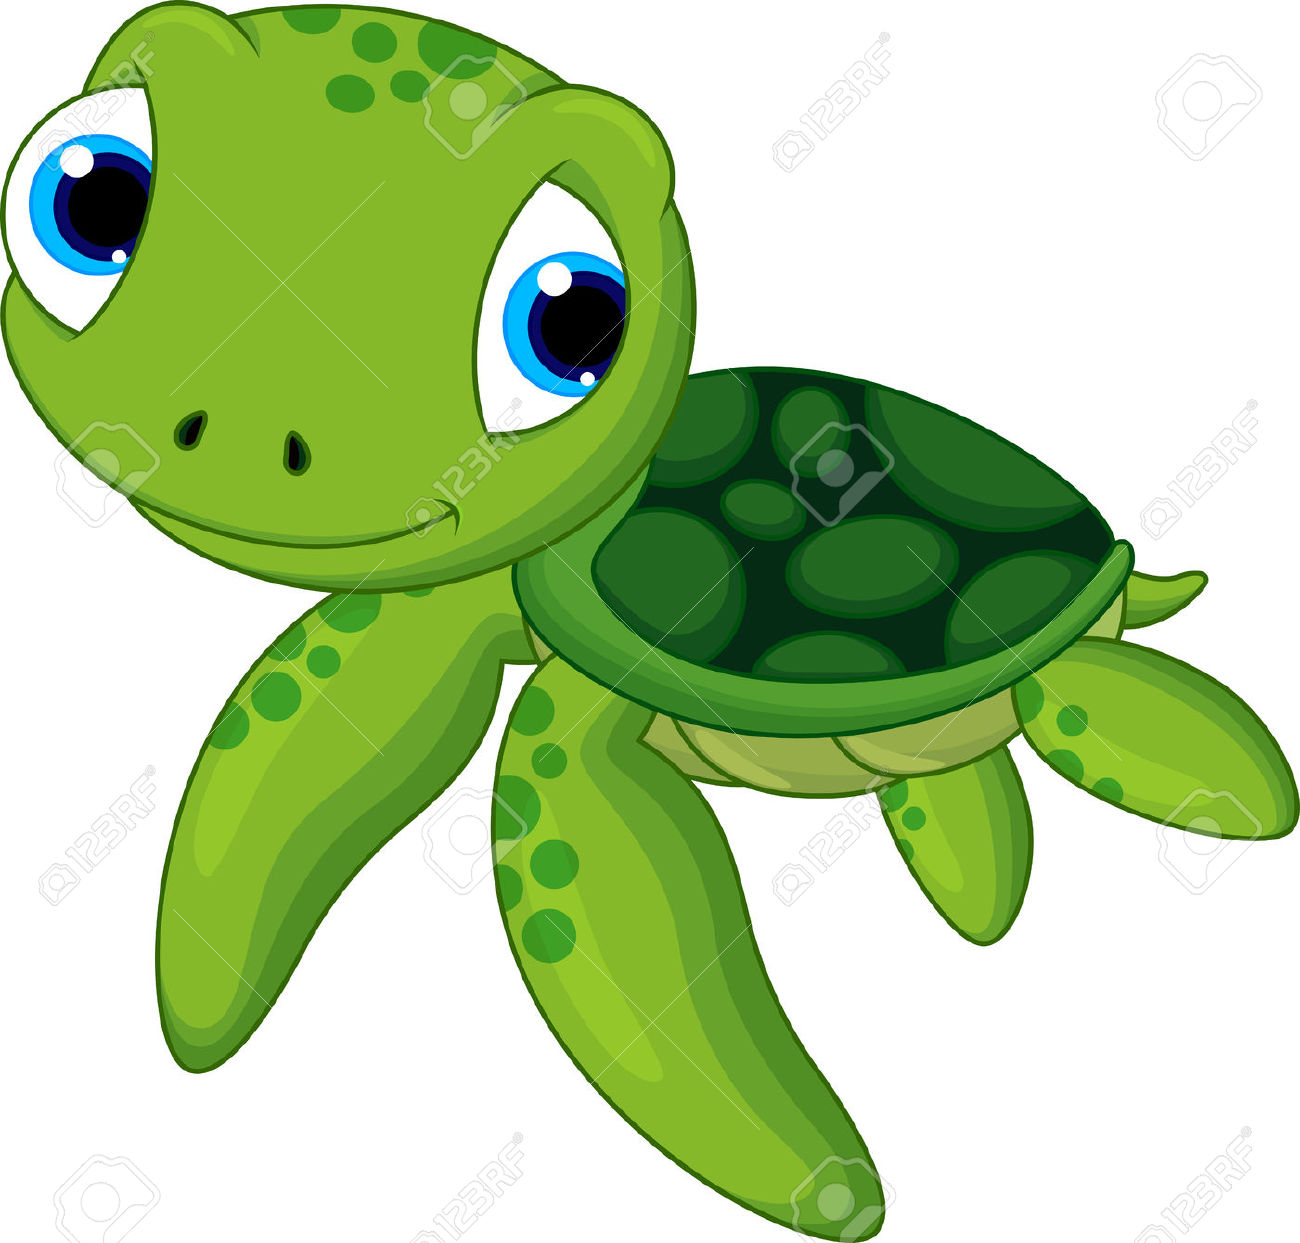 Sea Turtle clipart #19, Download drawings